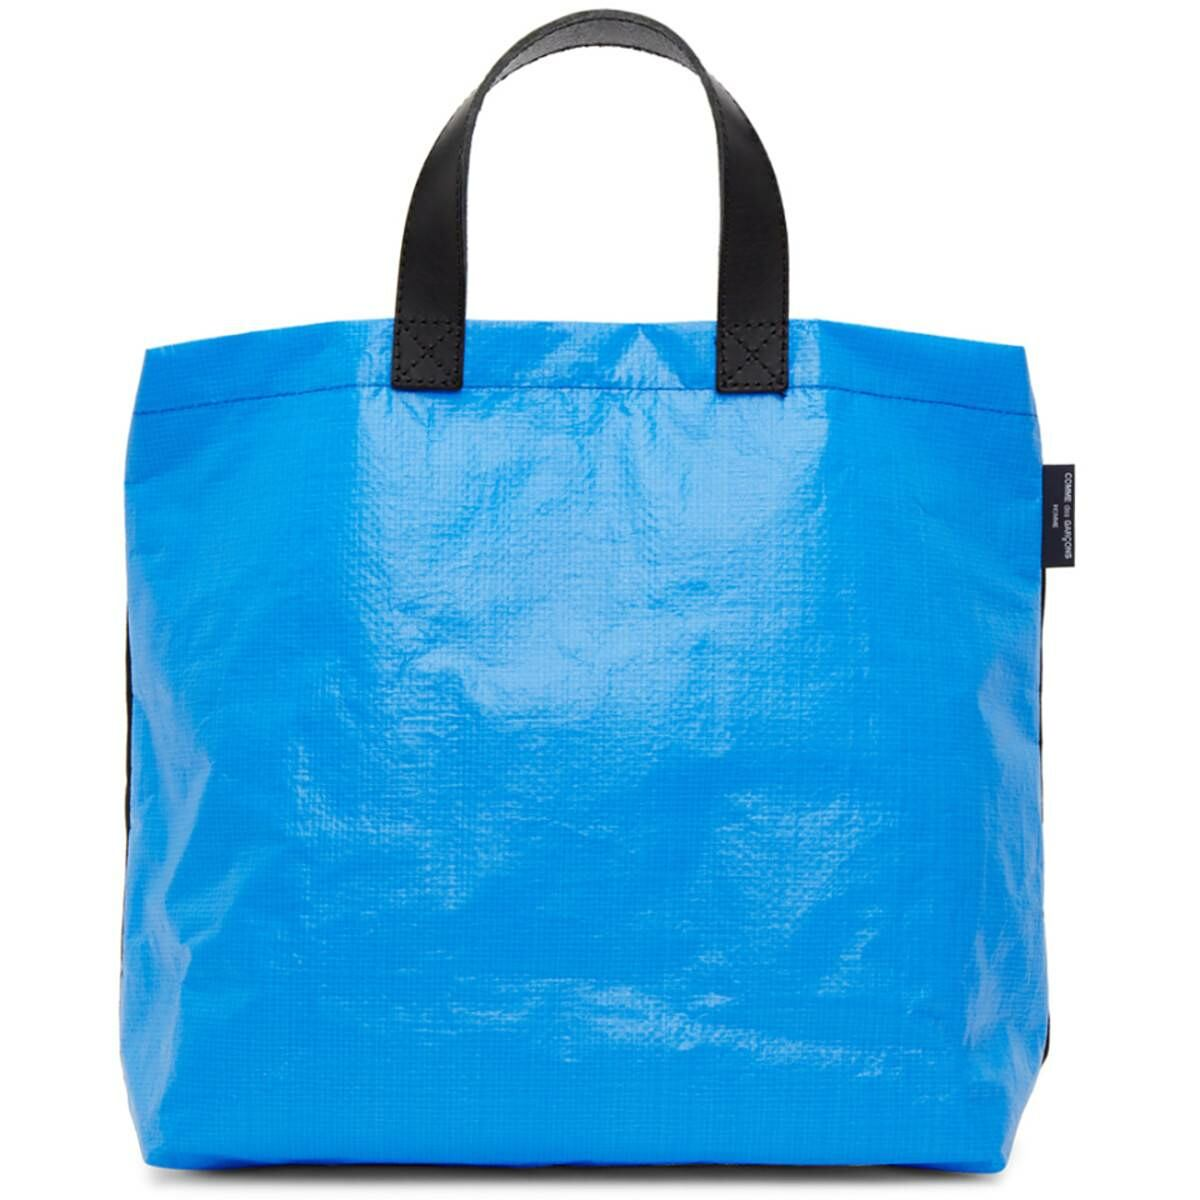 Comme des Garcons Homme Black and Blue Panelled Tote Ssense USA MEN Men ACCESSORIES Mens BAGS